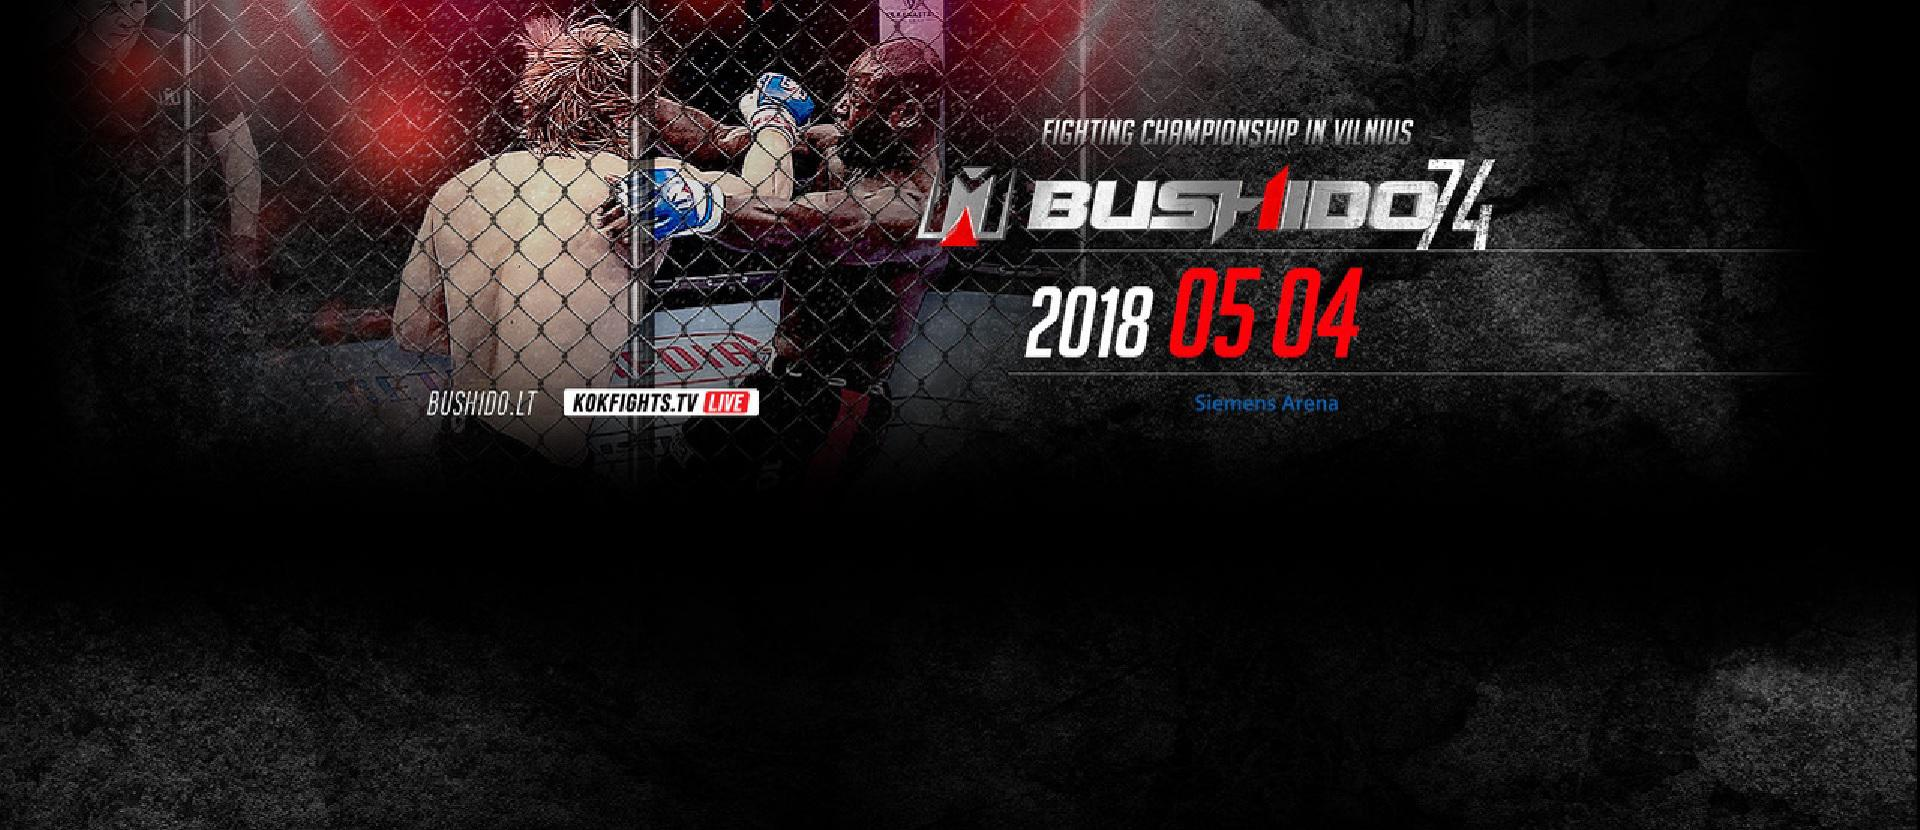 MMA Bushido Fighting Championship in Vilnius